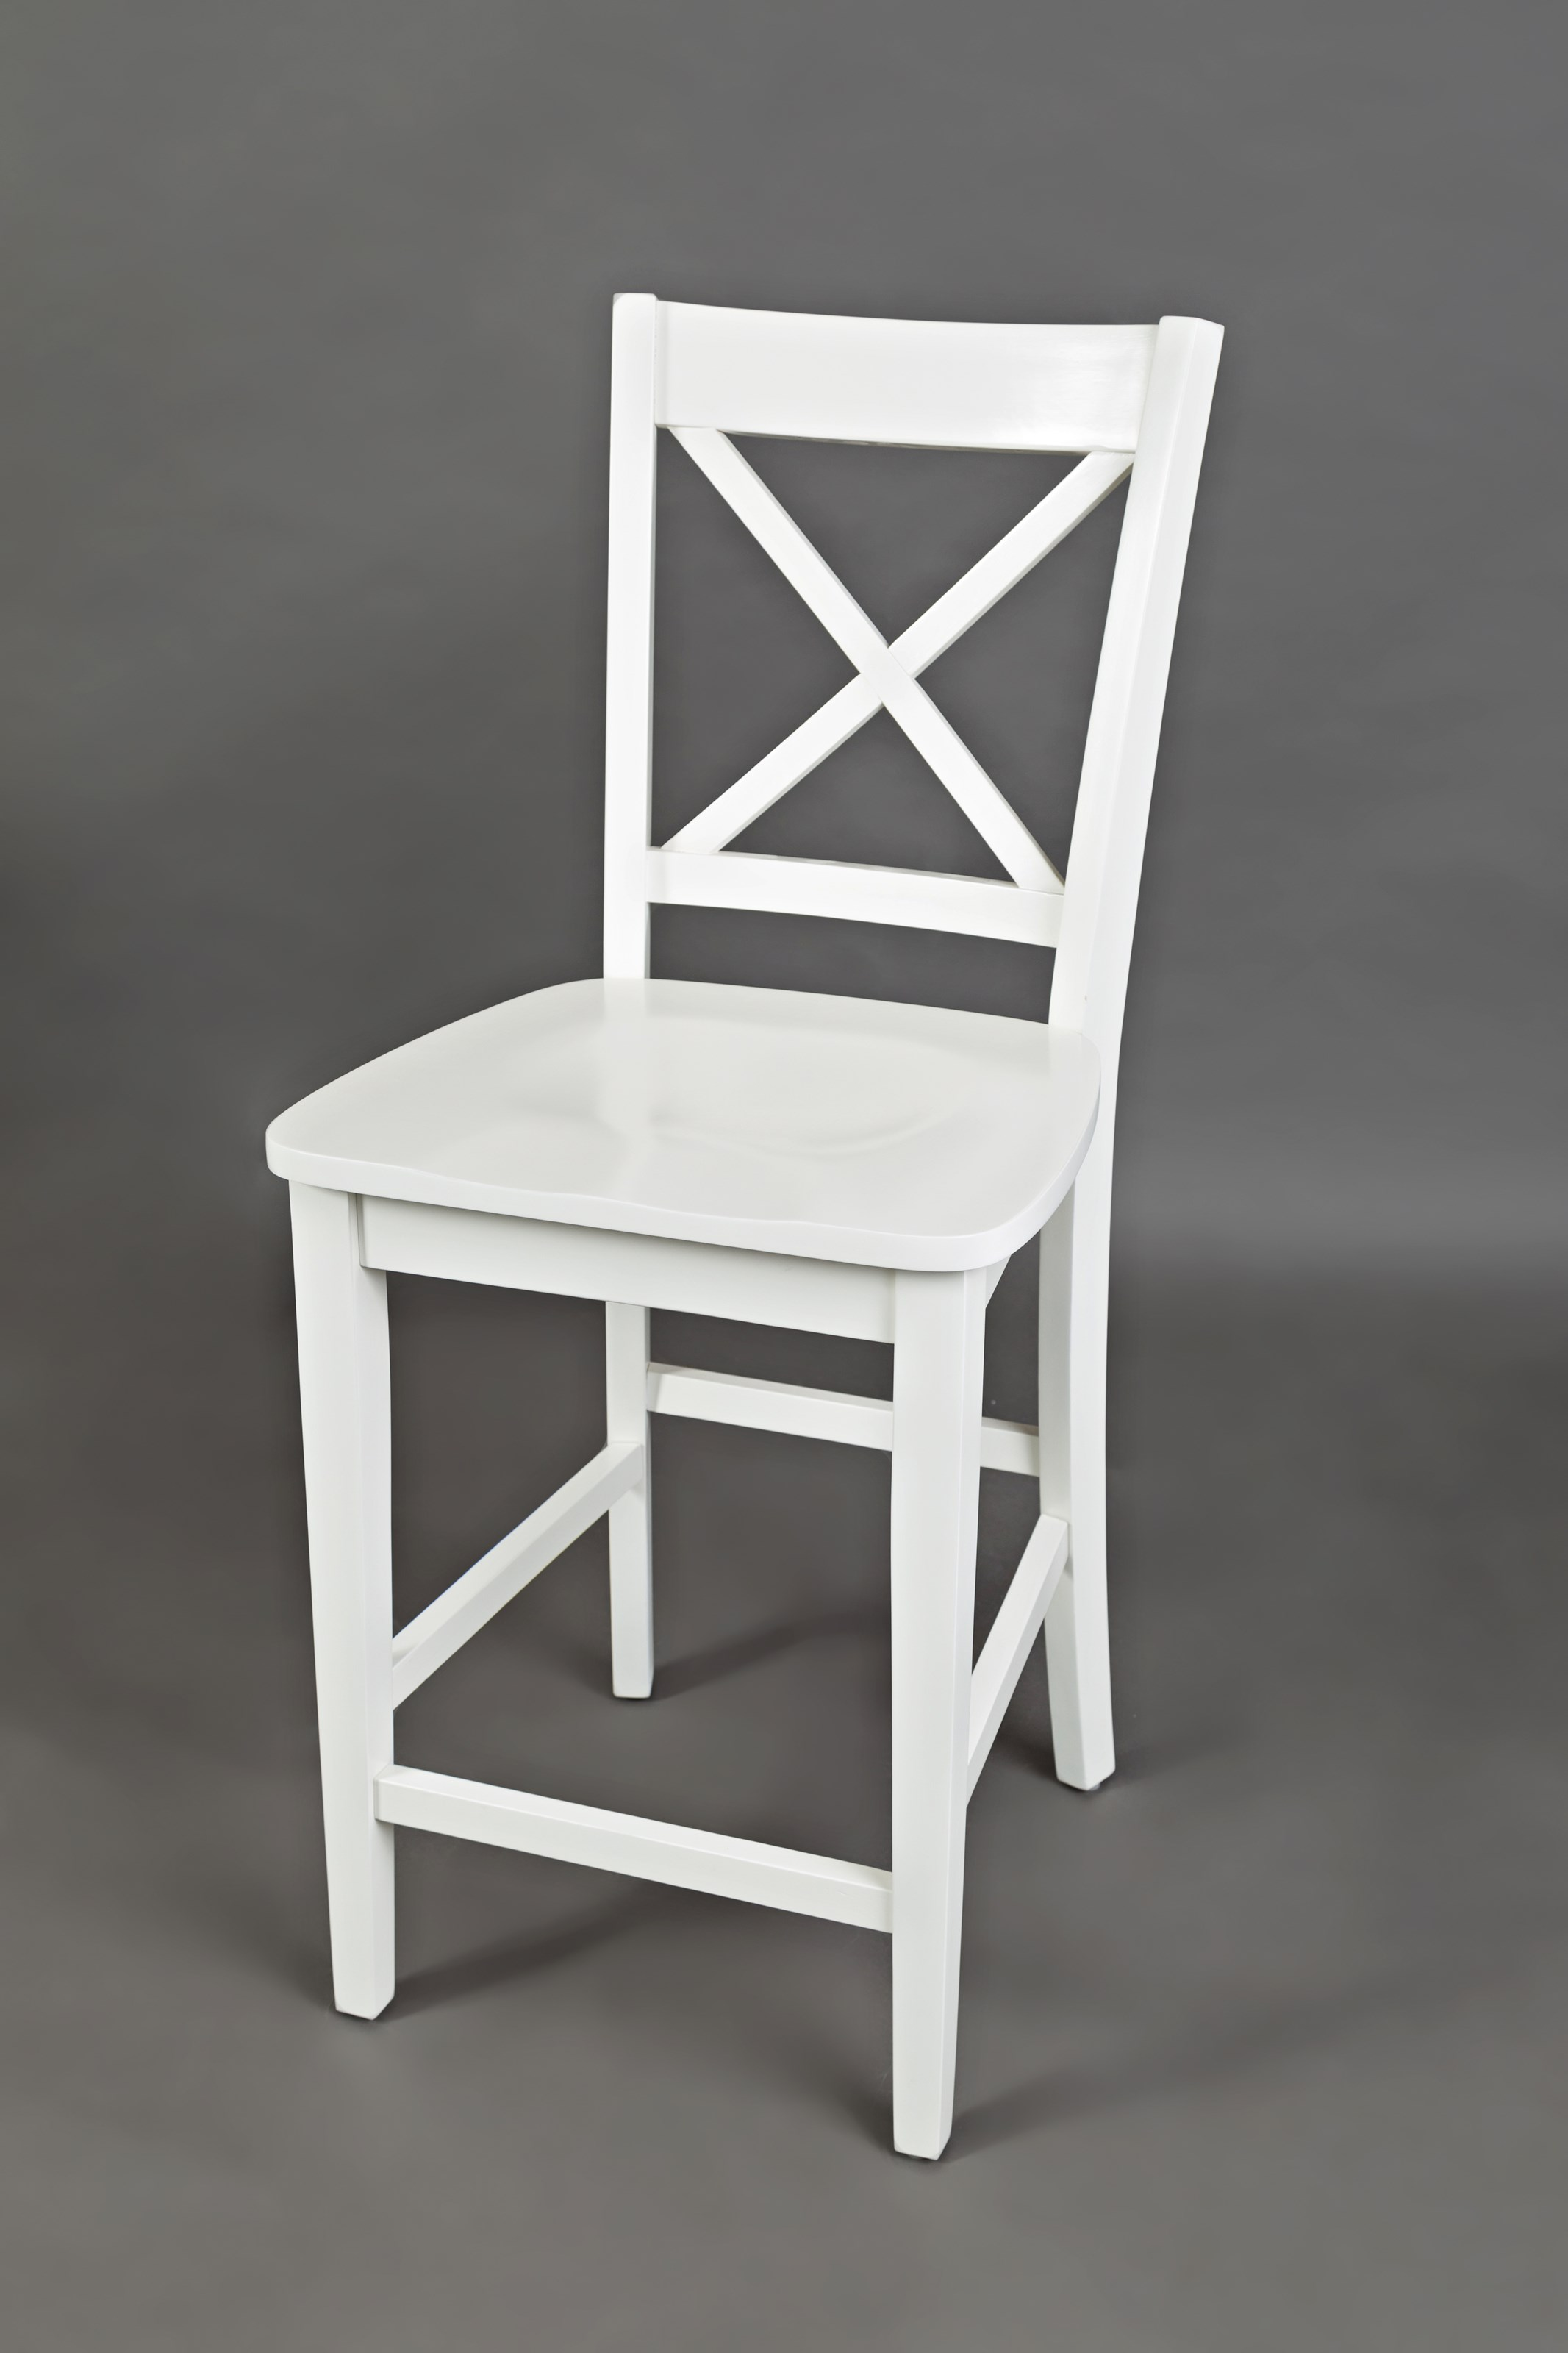 Simplicity X-Back Stool - Counter Height by Jofran at Sparks HomeStore